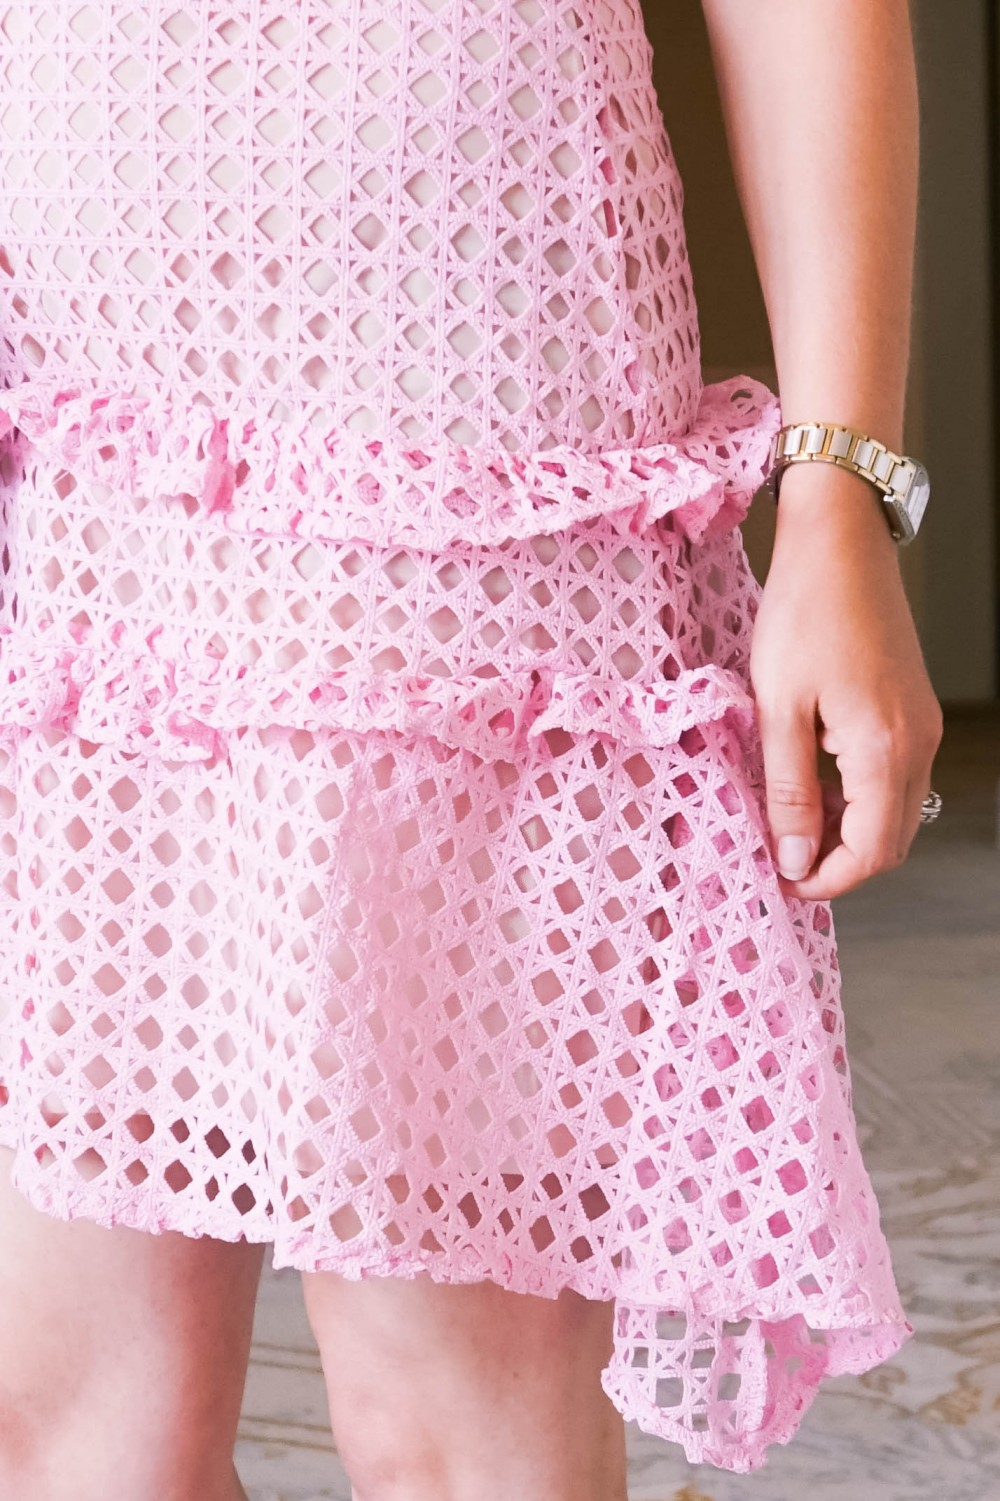 Pink Lace Dress-Borrowed by Design-Chanel Handbag-Self Portrait Pink Lace Dress Lookalike 10